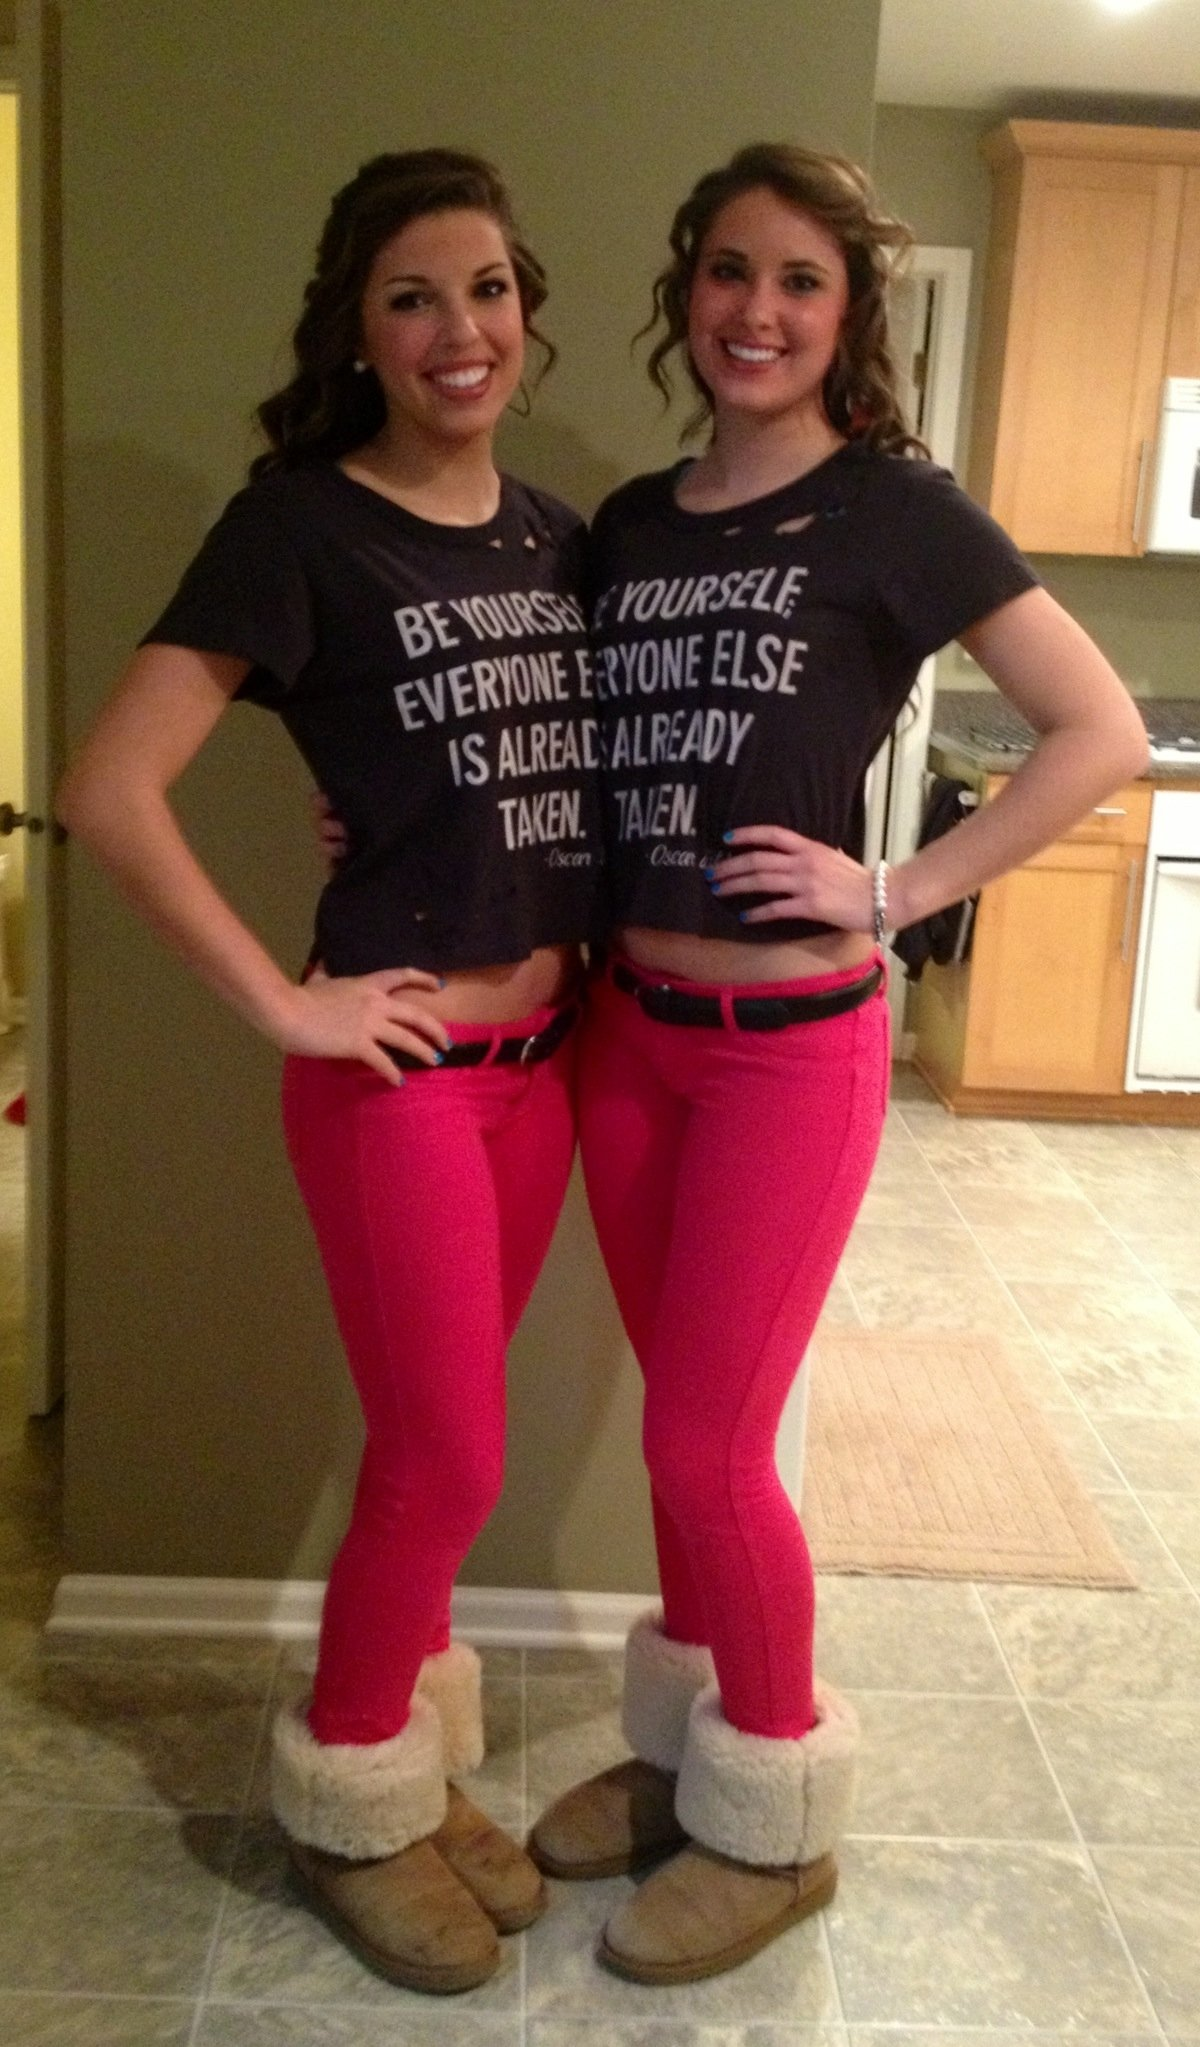 10 Ideal Clever Ideas For Halloween Costumes best friend twins 3 funny halloween costumes funny stuff 12 2020